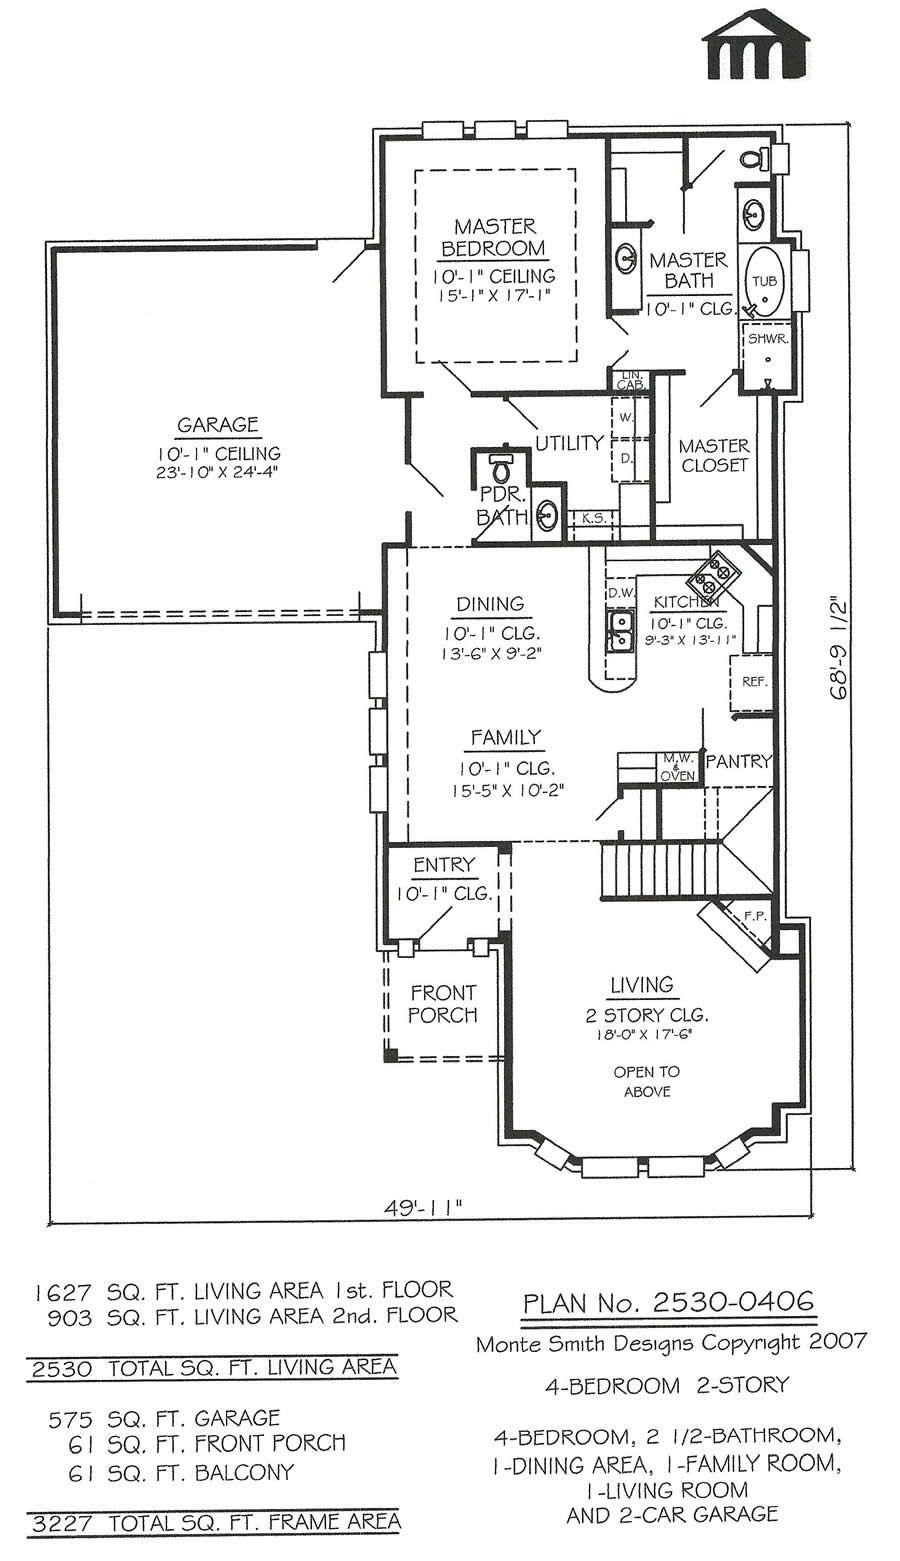 2 story 4 bedroom 2 1 2 bathroom 1 dining room 1 family room 1 living room and 2 car garage 2530 sq living area house plan offices in texas and  [ 900 x 1561 Pixel ]